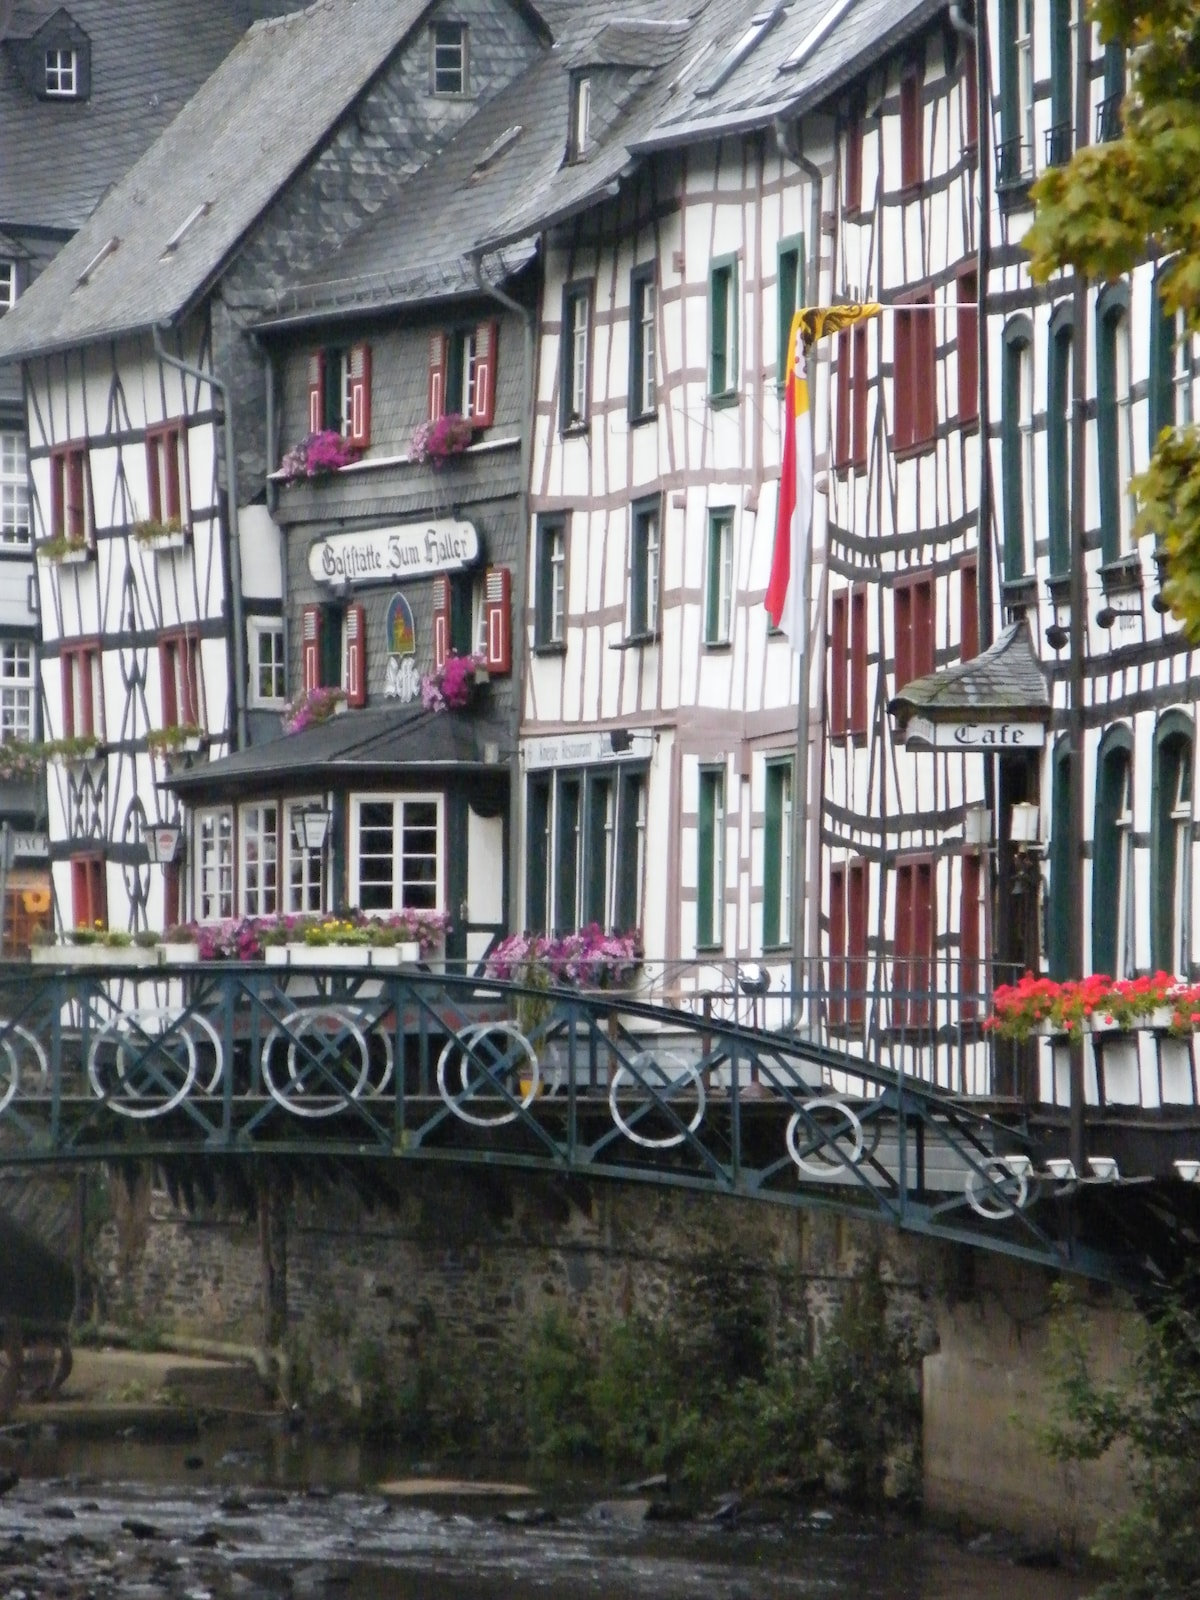 Above the slate roofs of Monschau